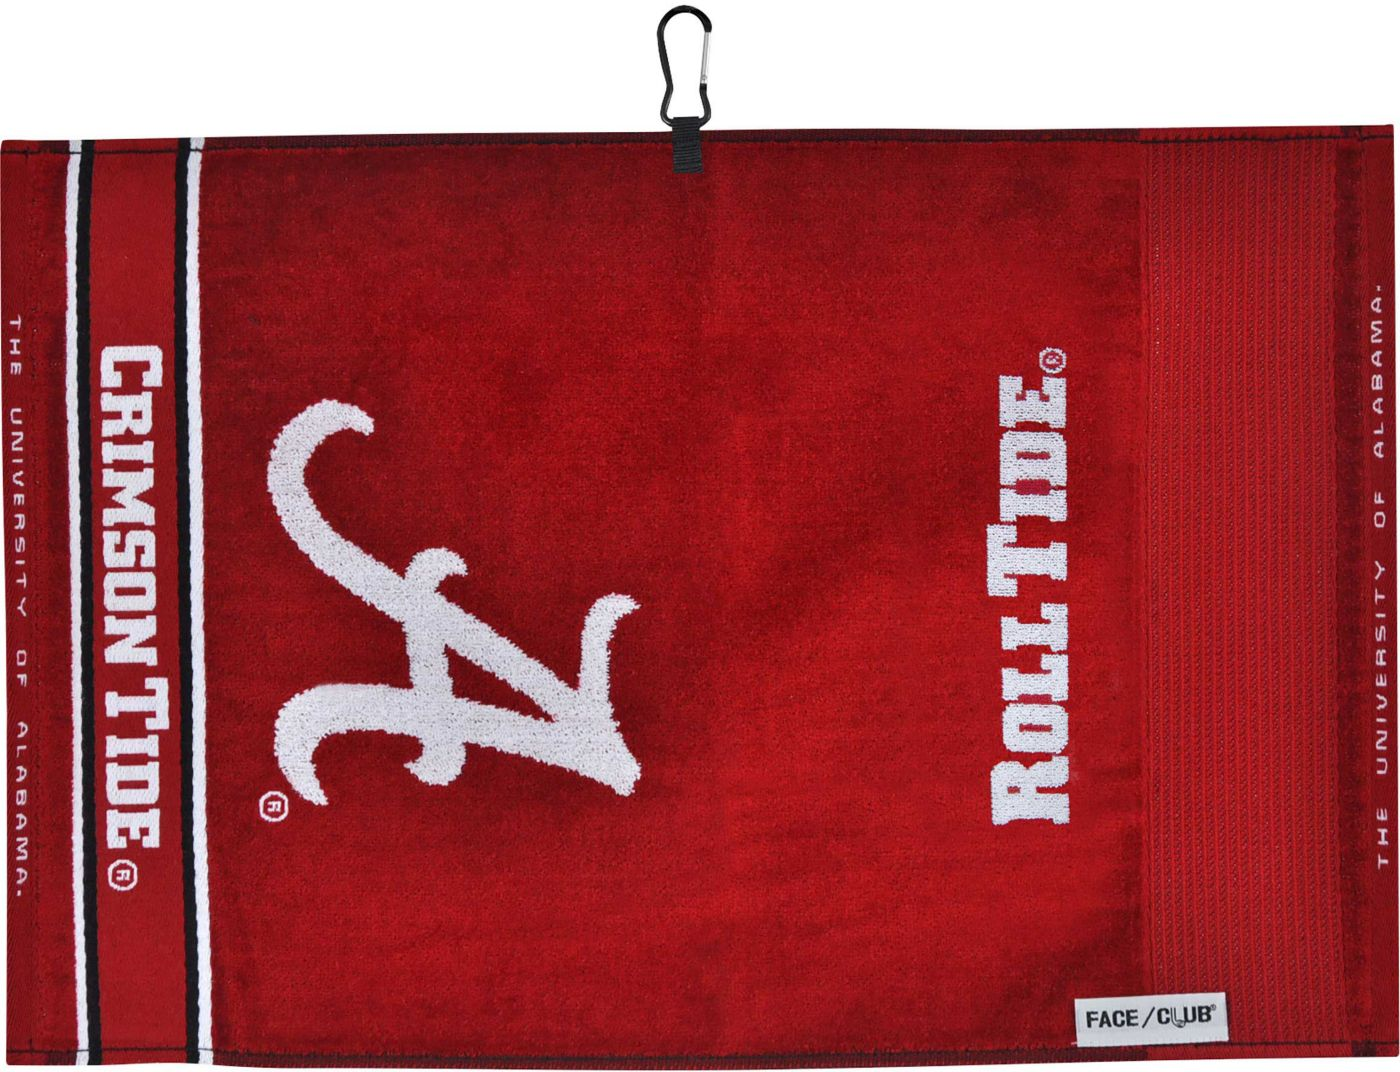 Team Effort Alabama Crimson Tide Face/Club Jacquard Golf Towel